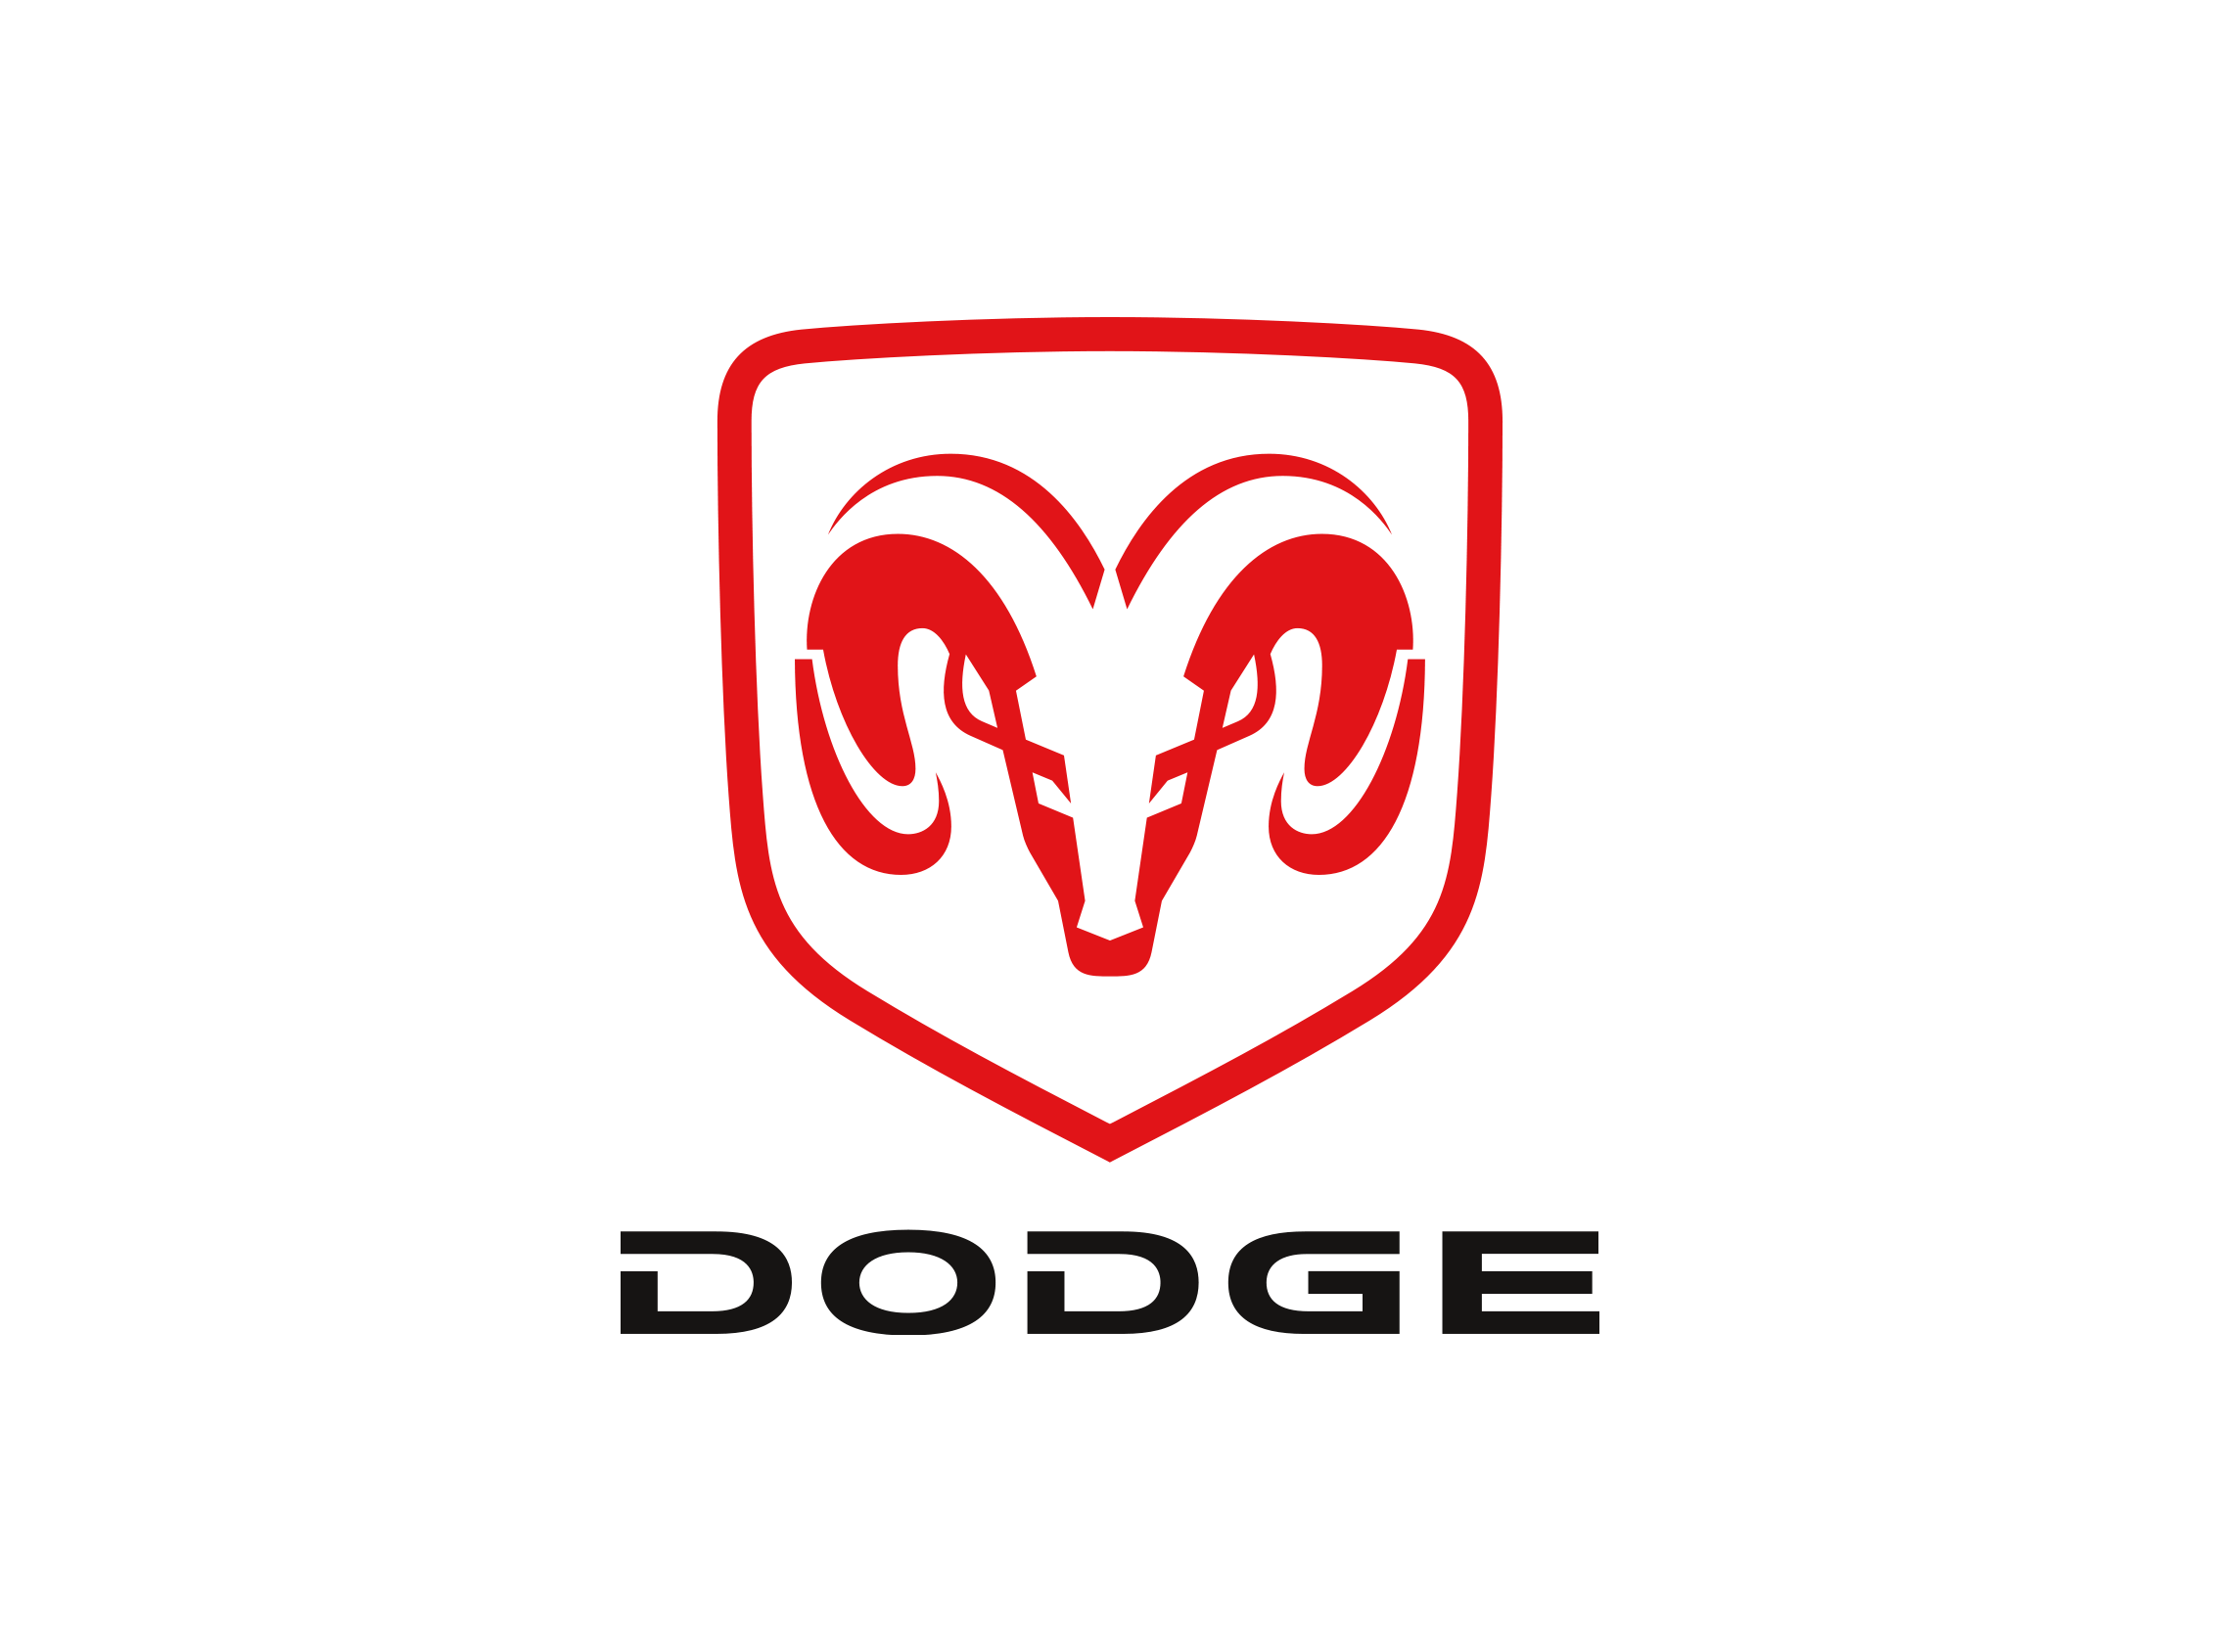 DODGE MOTOR IMPORT BRANDS VOITURE IMPORT USA MIAMI IMPORT VOITURE EUROP IMPORT USA MOTOR IMPORT7 - TESLA DUBAI importation voiture Dubai TESLA importation vehicule emirats arabe unis motorimport